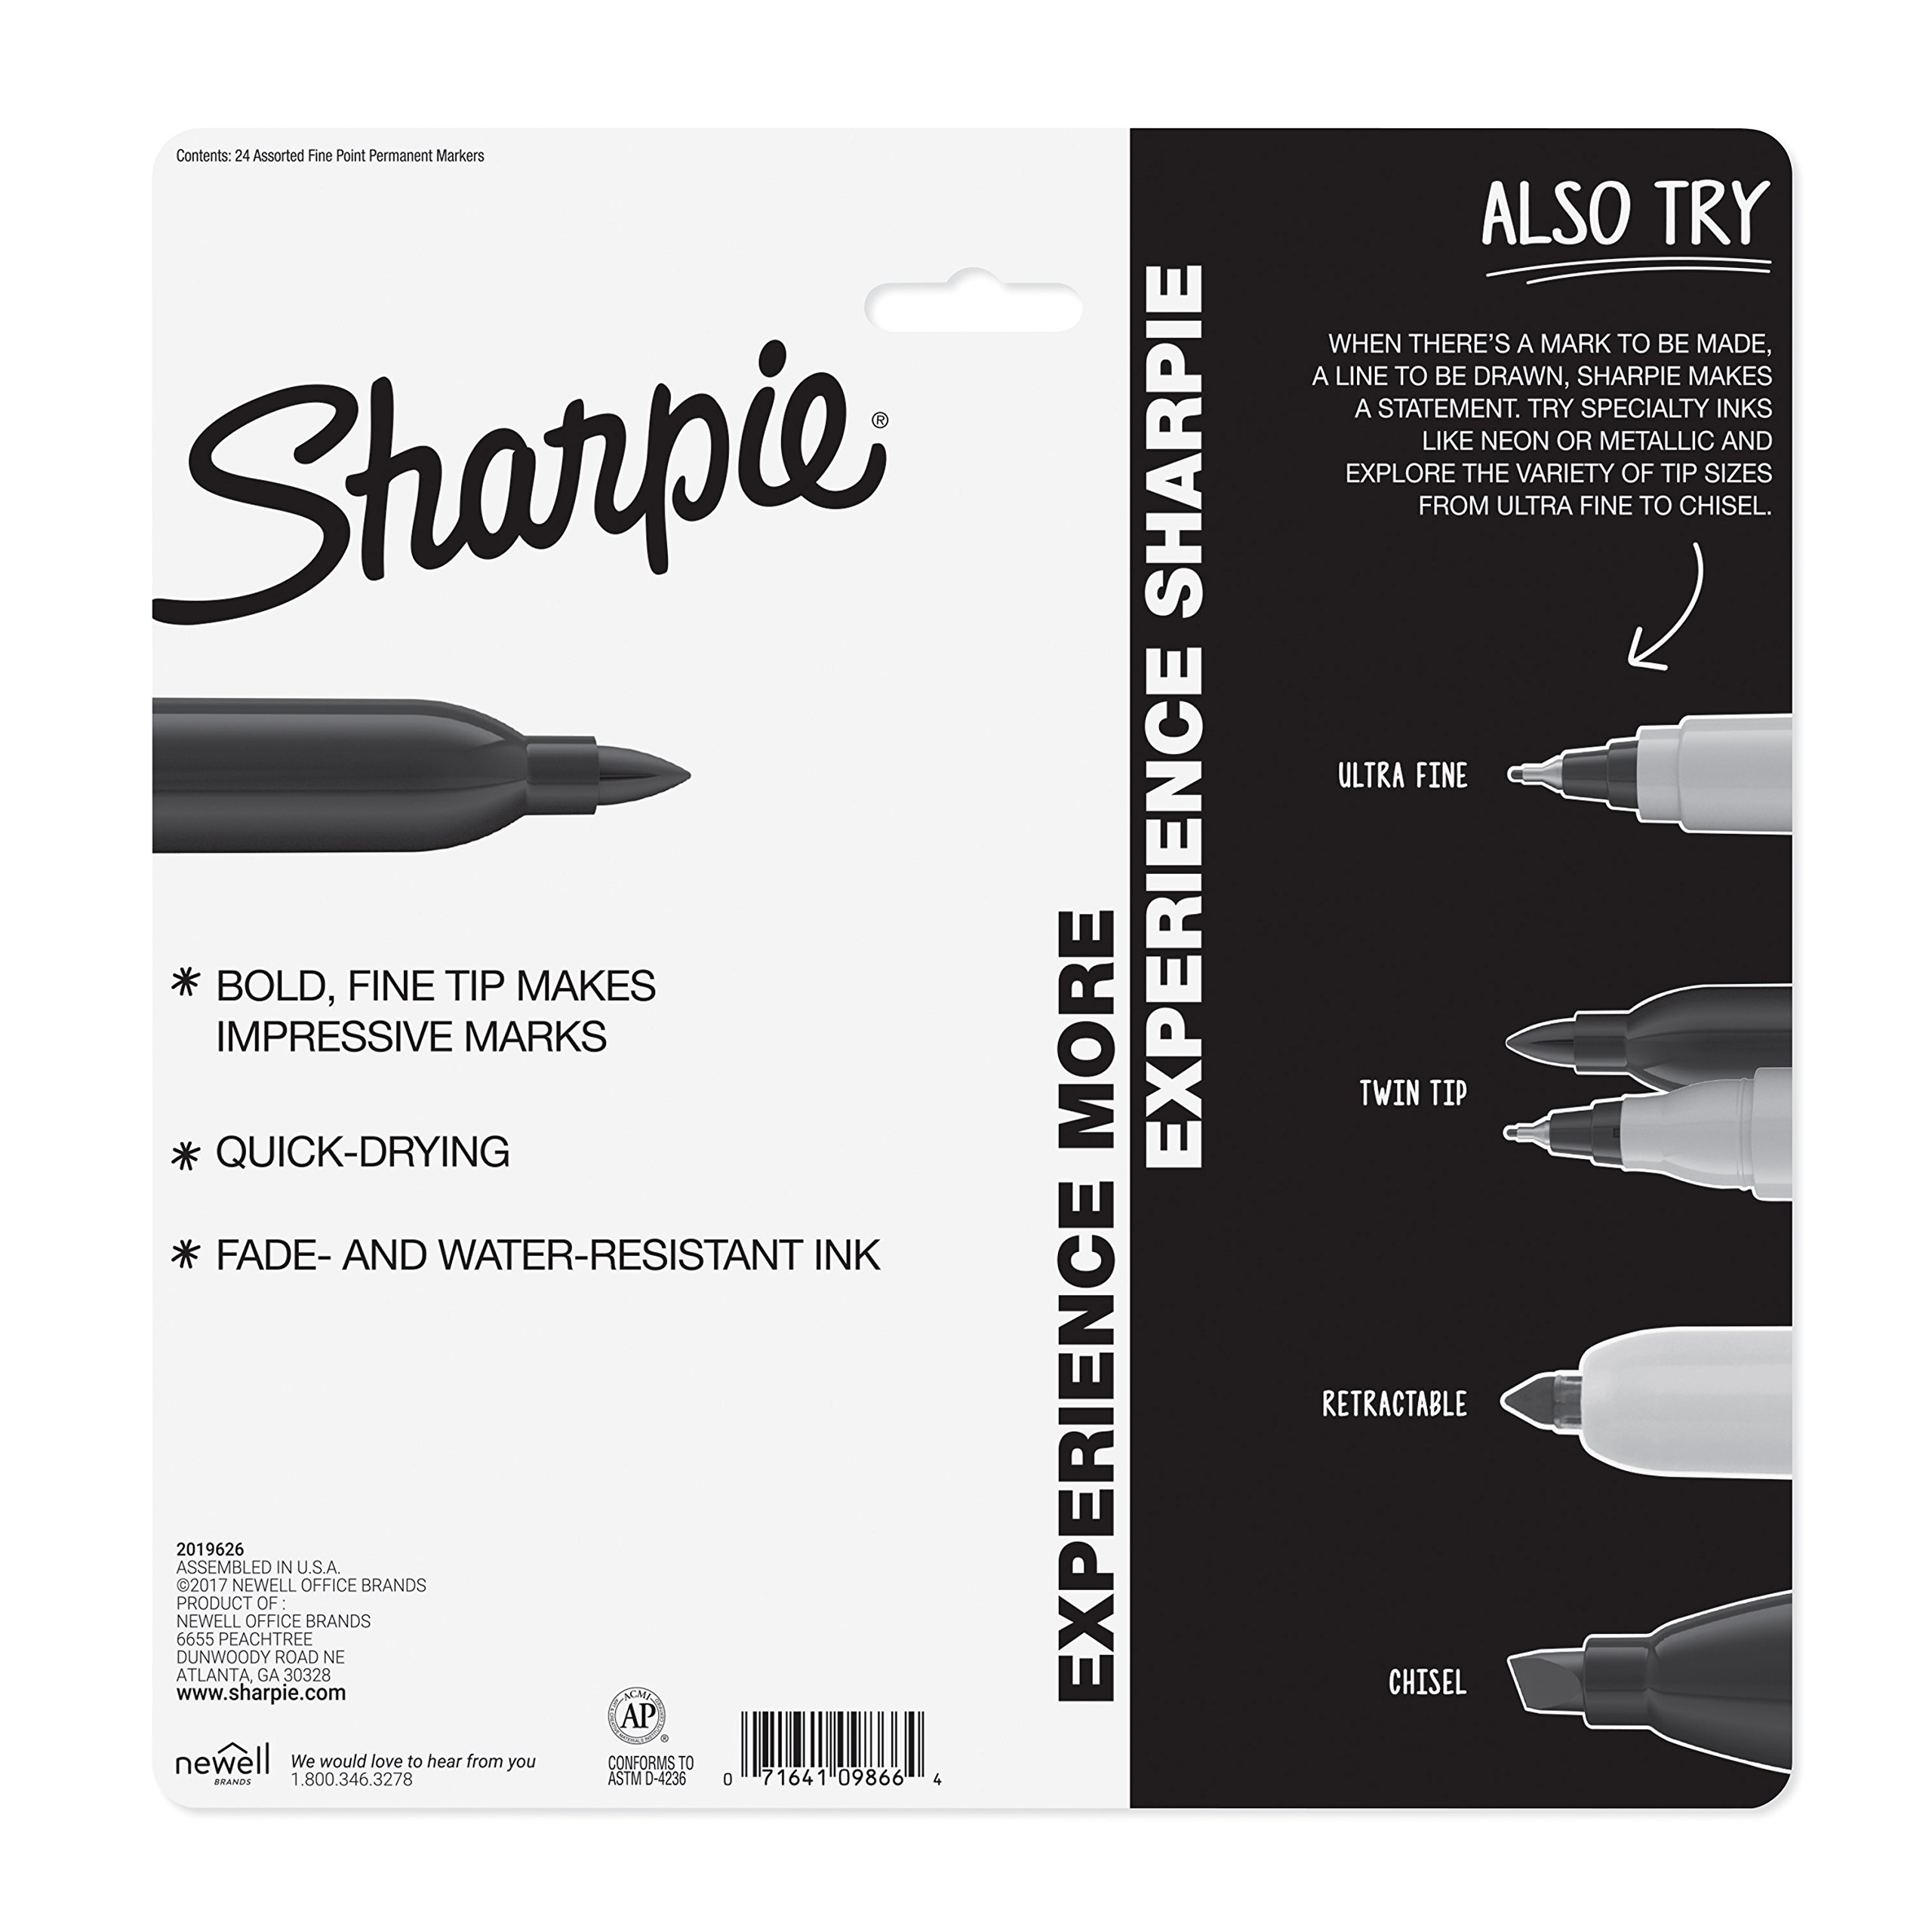 Sharpie Color Burst Permanent Markers, Fine Point, Assorted Colors, 24 Count by Sharpie (Image #9)